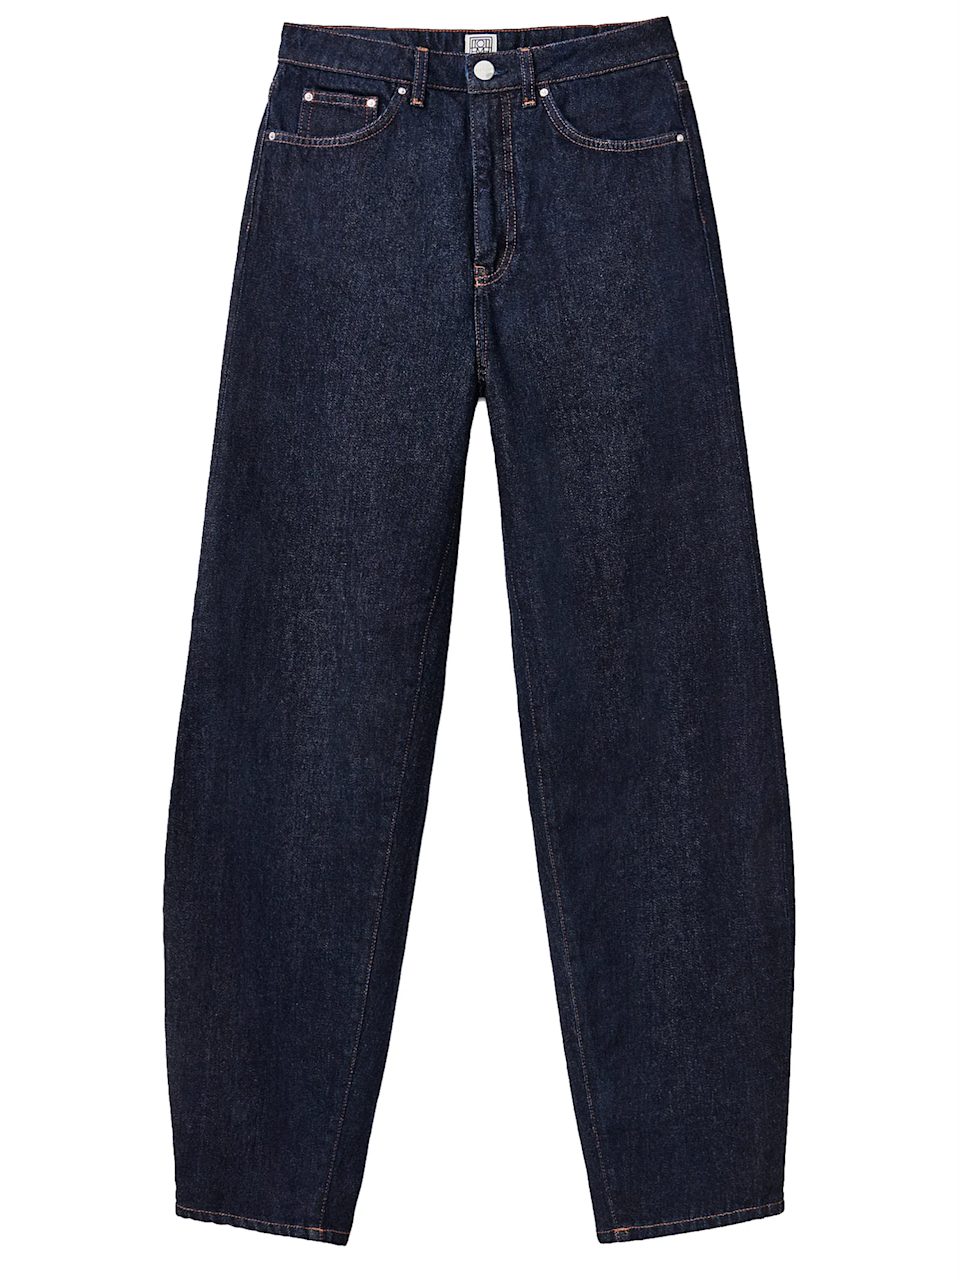 "<h2>Relaxed Denim </h2><br><br>""Denim is a key fabrication for the season ahead, and across all categories, we have seen a range of casual styles to more elevated, fashion-forward pieces. A highlight shape is the Toteme barrel leg jean — a perfect fit for a more relaxed silhouette. The denim dress will also be a key item.""<br><br>- Cassie Smart, Head of Womenswear Buying at MATCHESFASHION <br><br><strong>Toteme</strong> High-Rise Barrel-Leg Jeans, $, available at <a href=""https://go.skimresources.com/?id=30283X879131&url=https%3A%2F%2Fwww.matchesfashion.com%2Fus%2Fproducts%2FTot%25C3%25AAme-High-rise-barrel-leg-jeans-1386171"" rel=""nofollow noopener"" target=""_blank"" data-ylk=""slk:MatchesFashion"" class=""link rapid-noclick-resp"">MatchesFashion</a>"